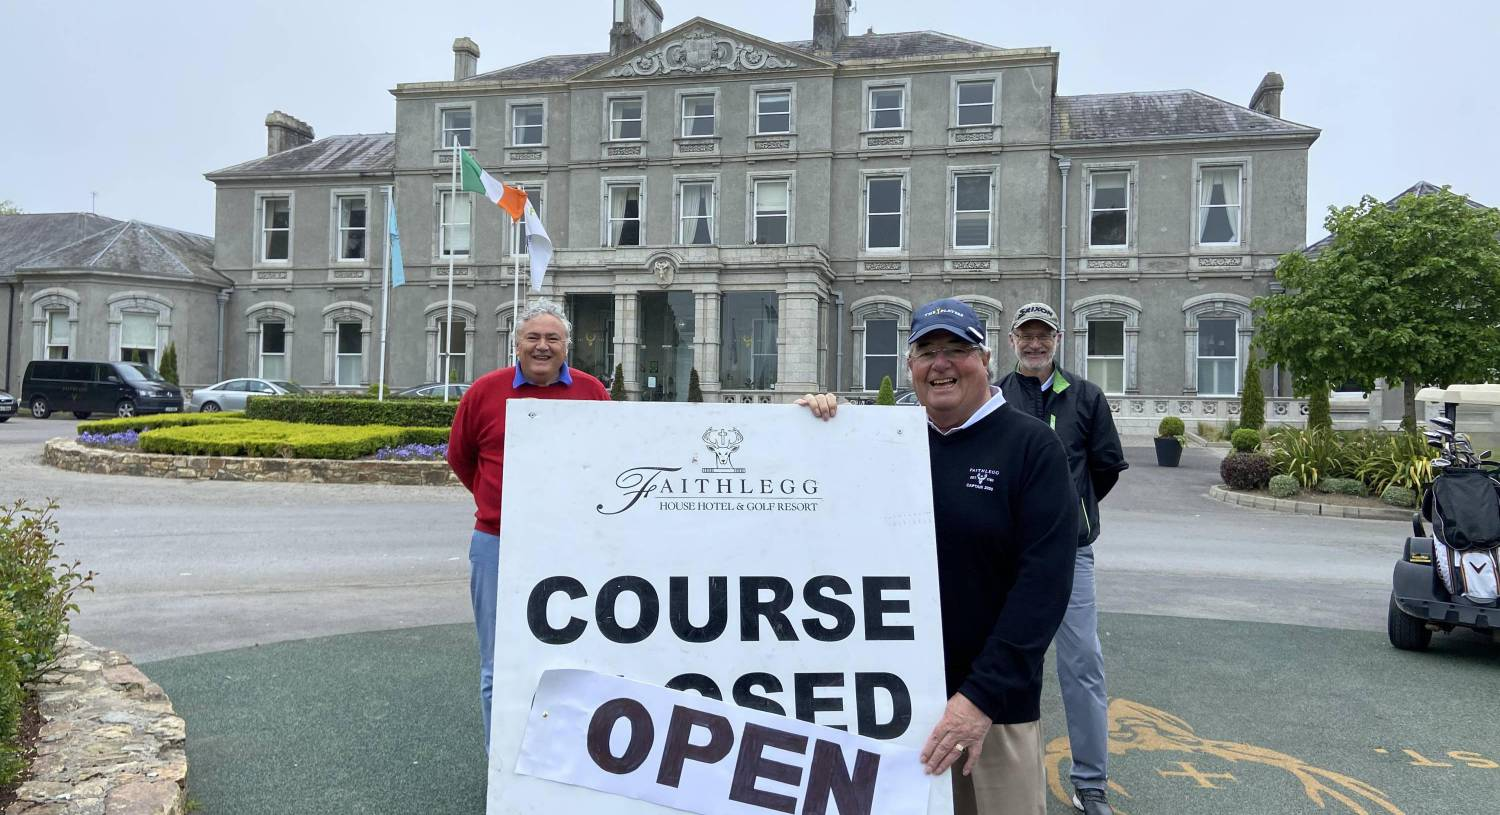 Golfers return to the fairways as courses reopen